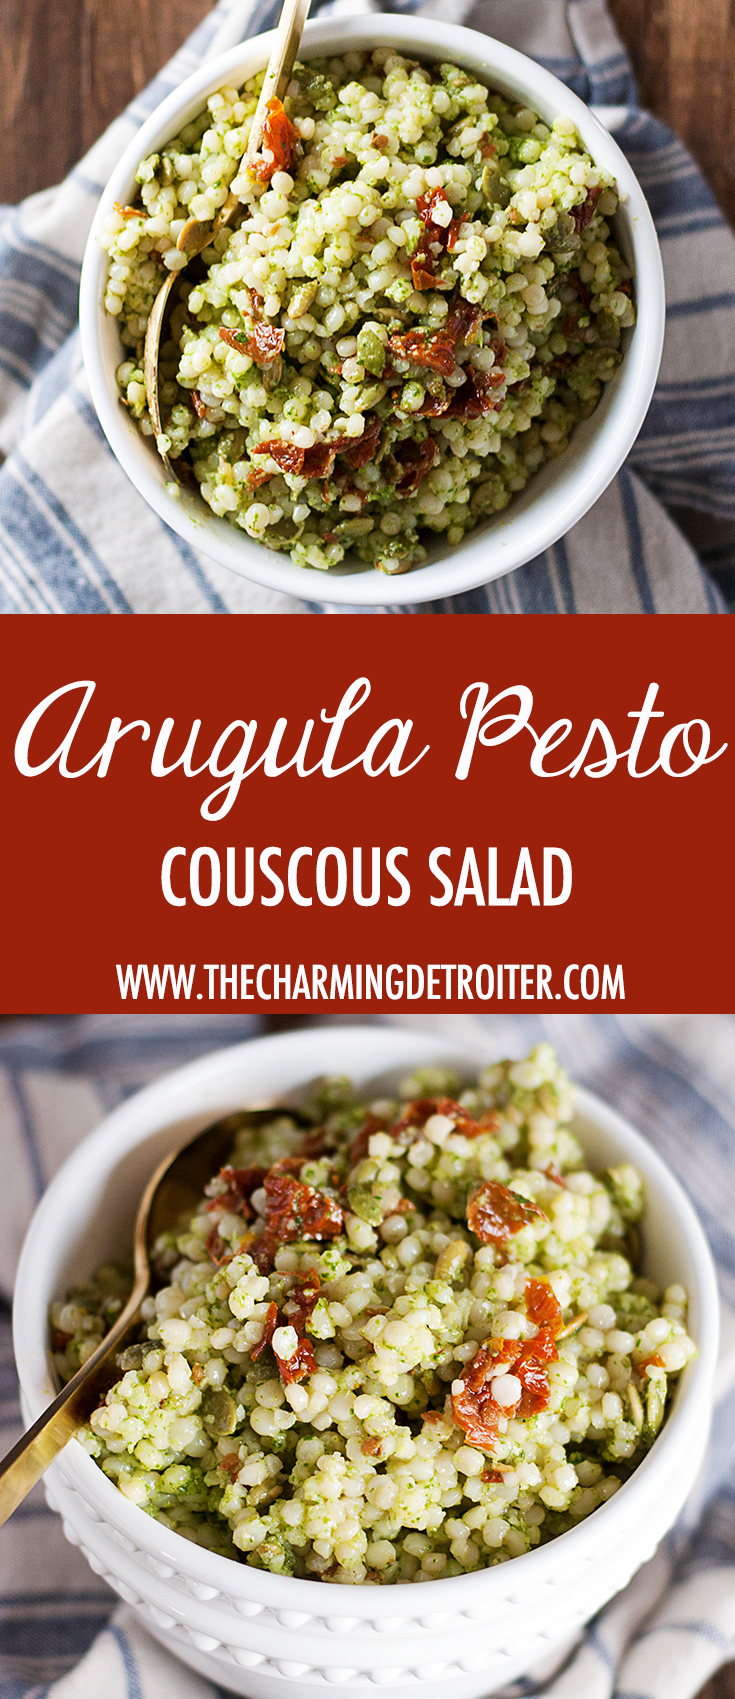 A quick arugula pesto couscous salad featuring Israeli couscous, fresh arugula pesto, toasted pepitas, and sun-dried tomatoes.